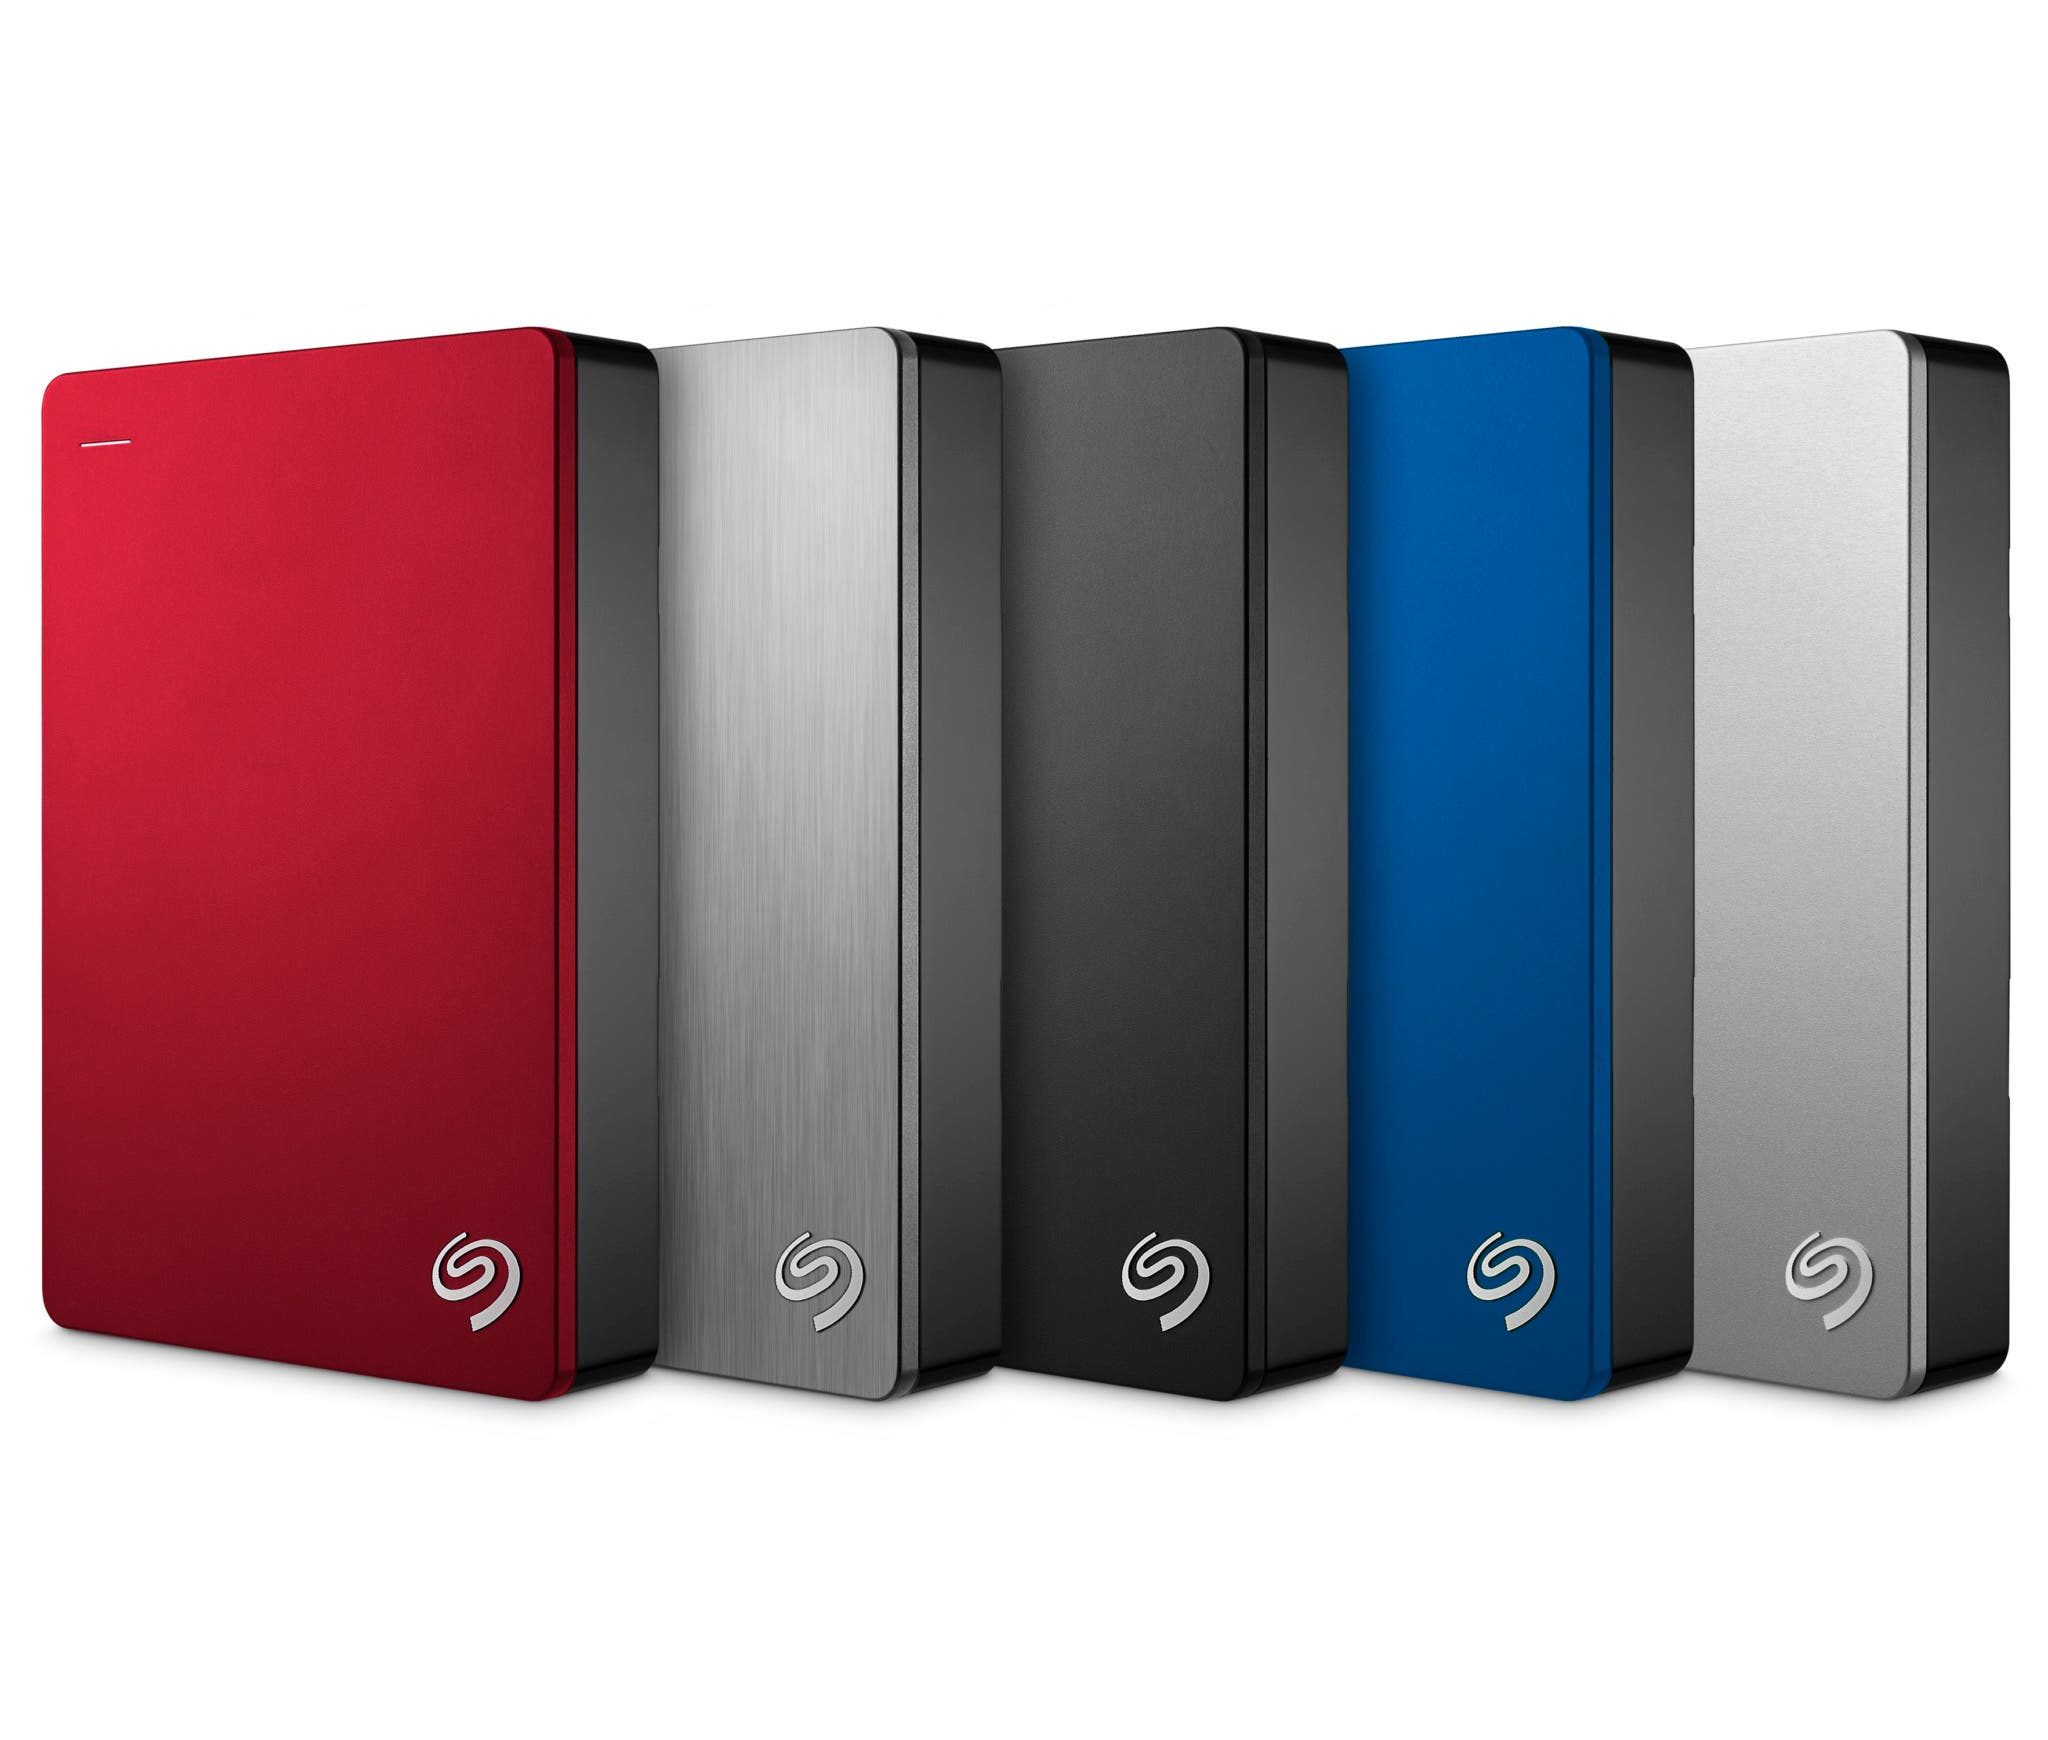 Seagate Launches World's Highest Capacity 5TB Portable Hard Drive